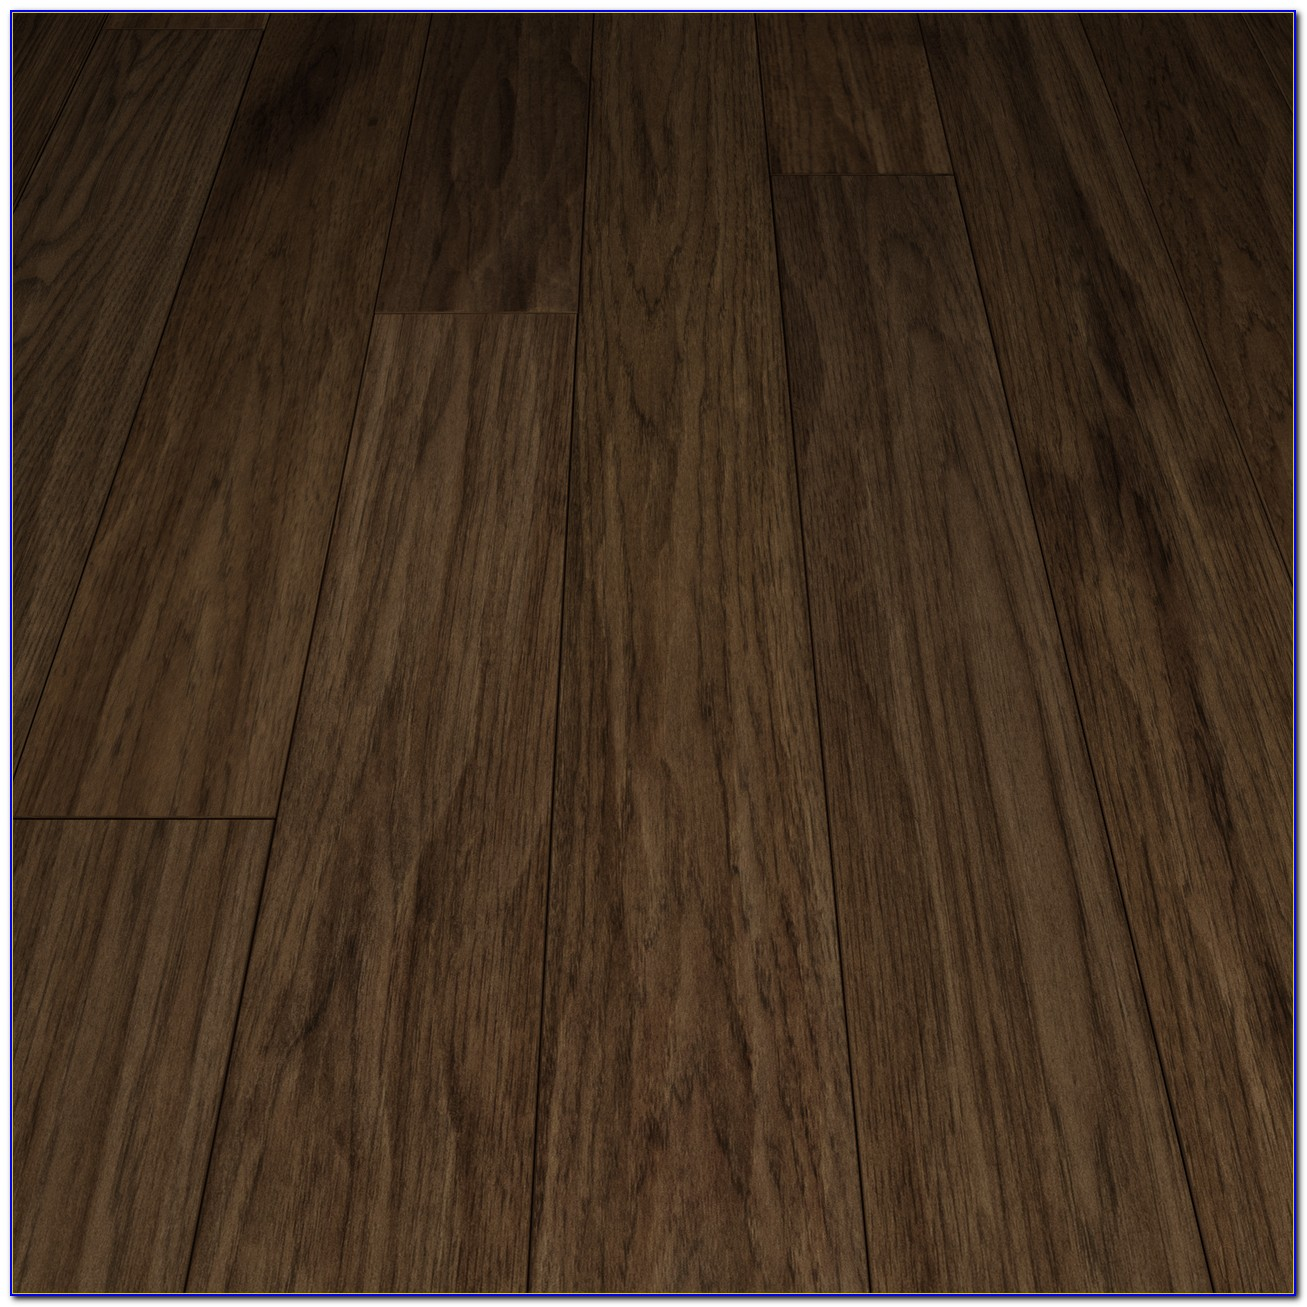 Images Of Hickory Hardwood Flooring